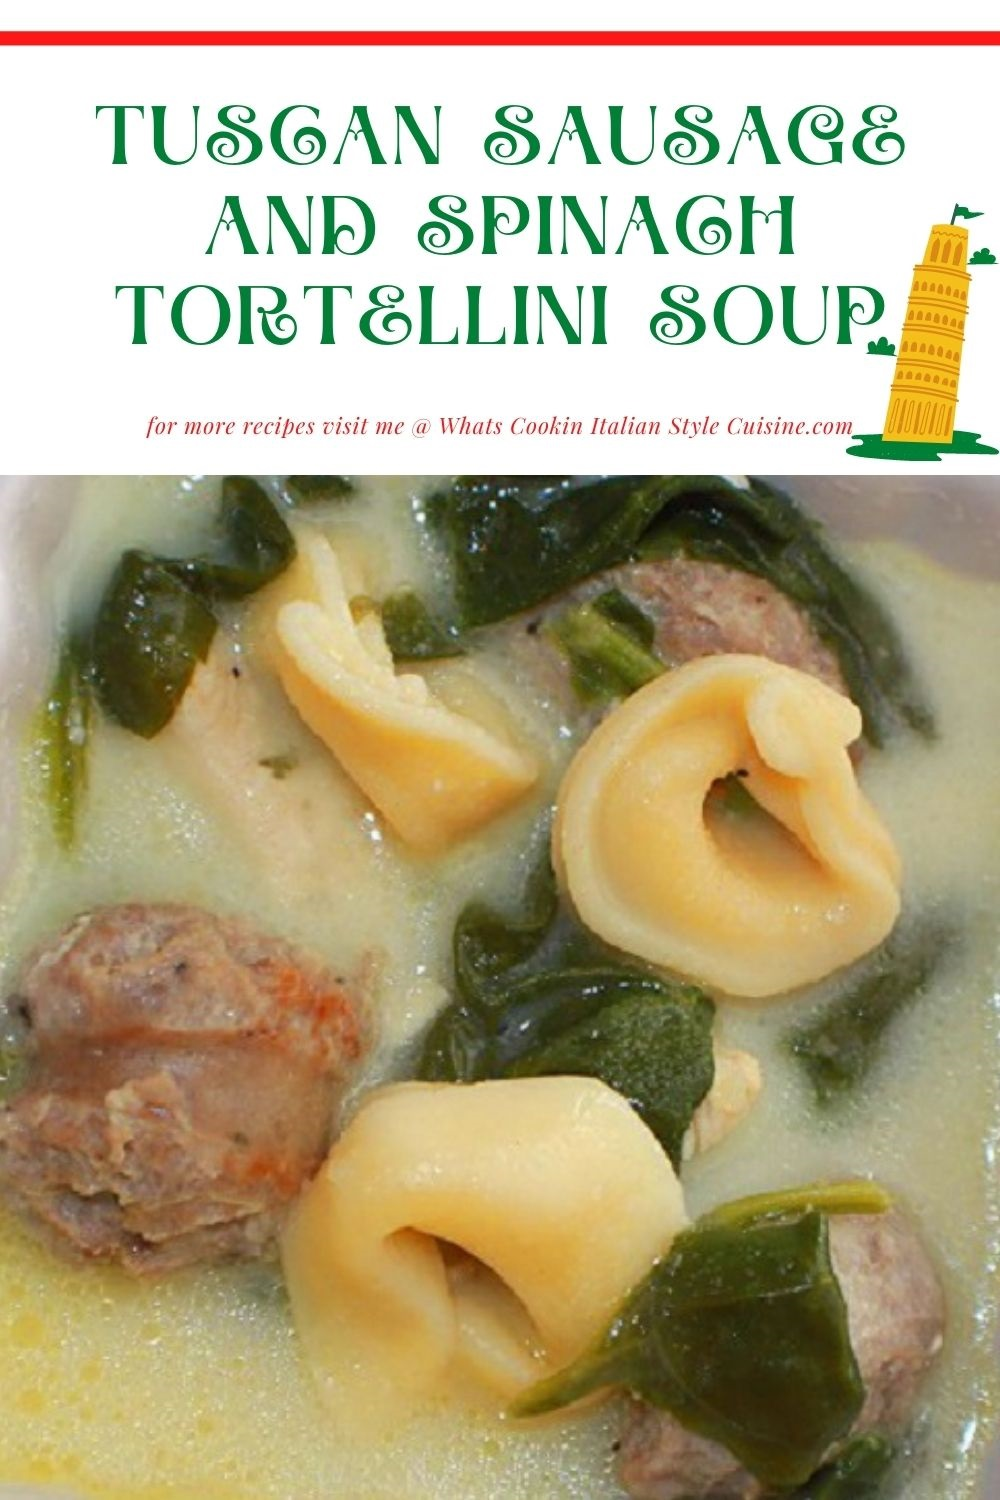 this is a pin for later on how to make a Tuscan Sausage Tortellini Soup